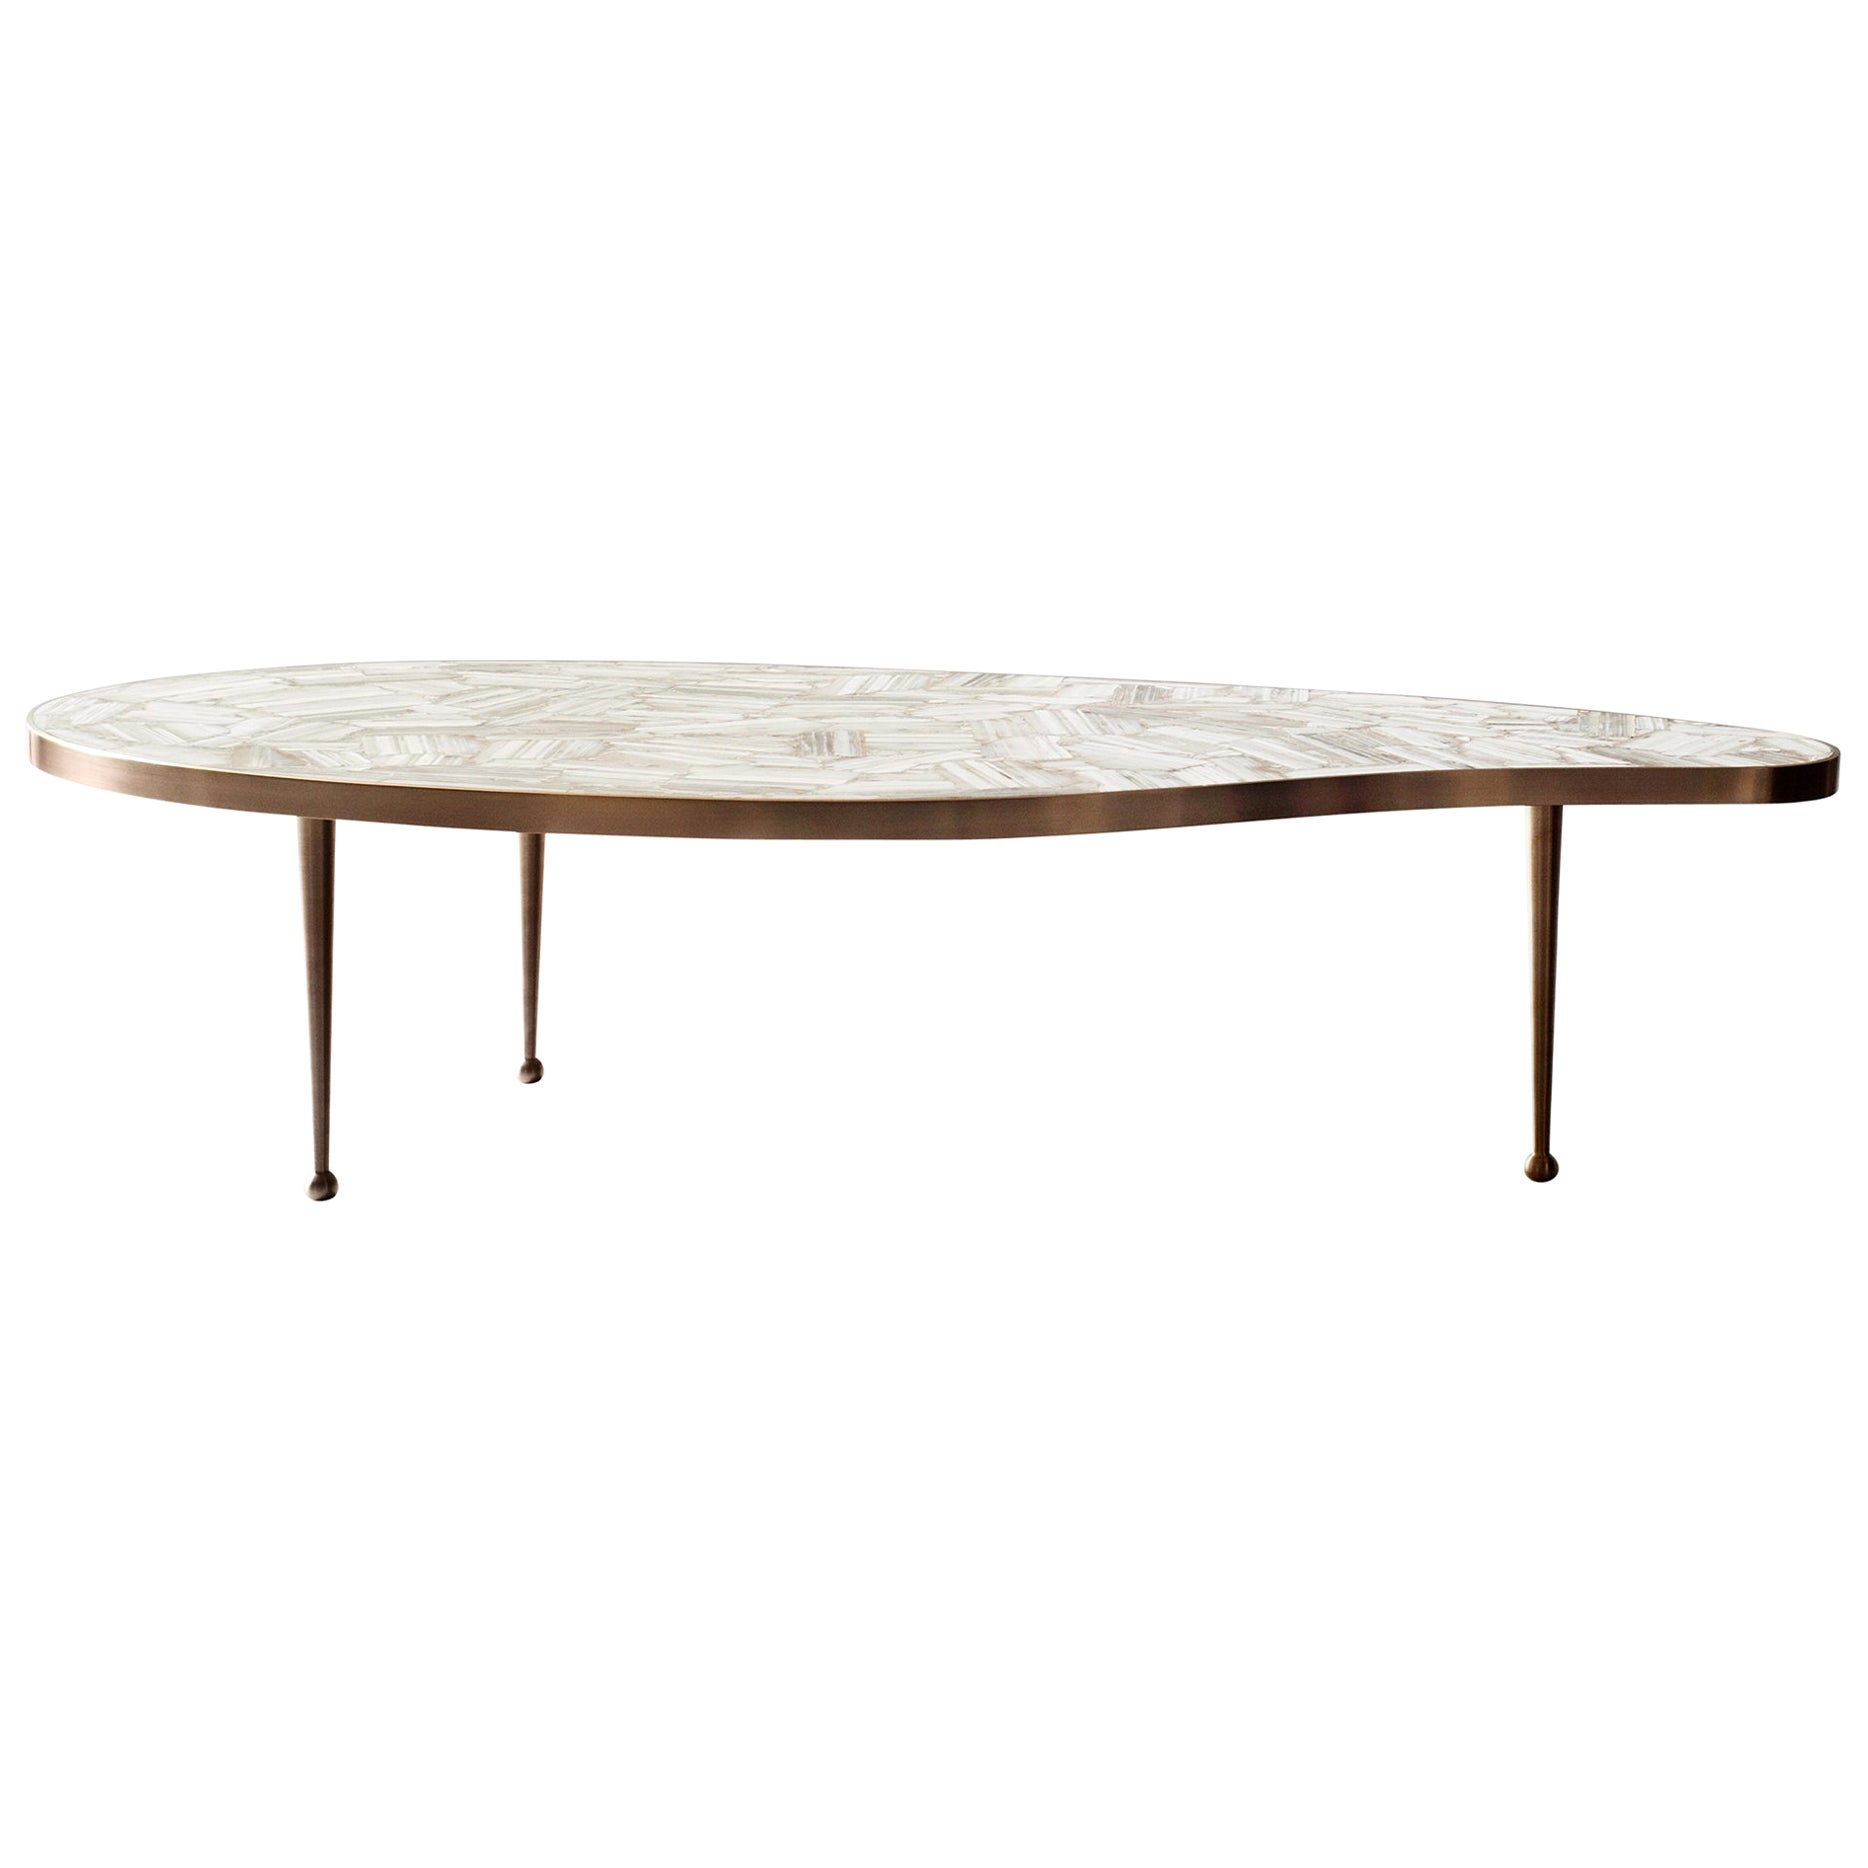 Lola Coffee Table by DeMuro Das in Banded White Agate and Brass